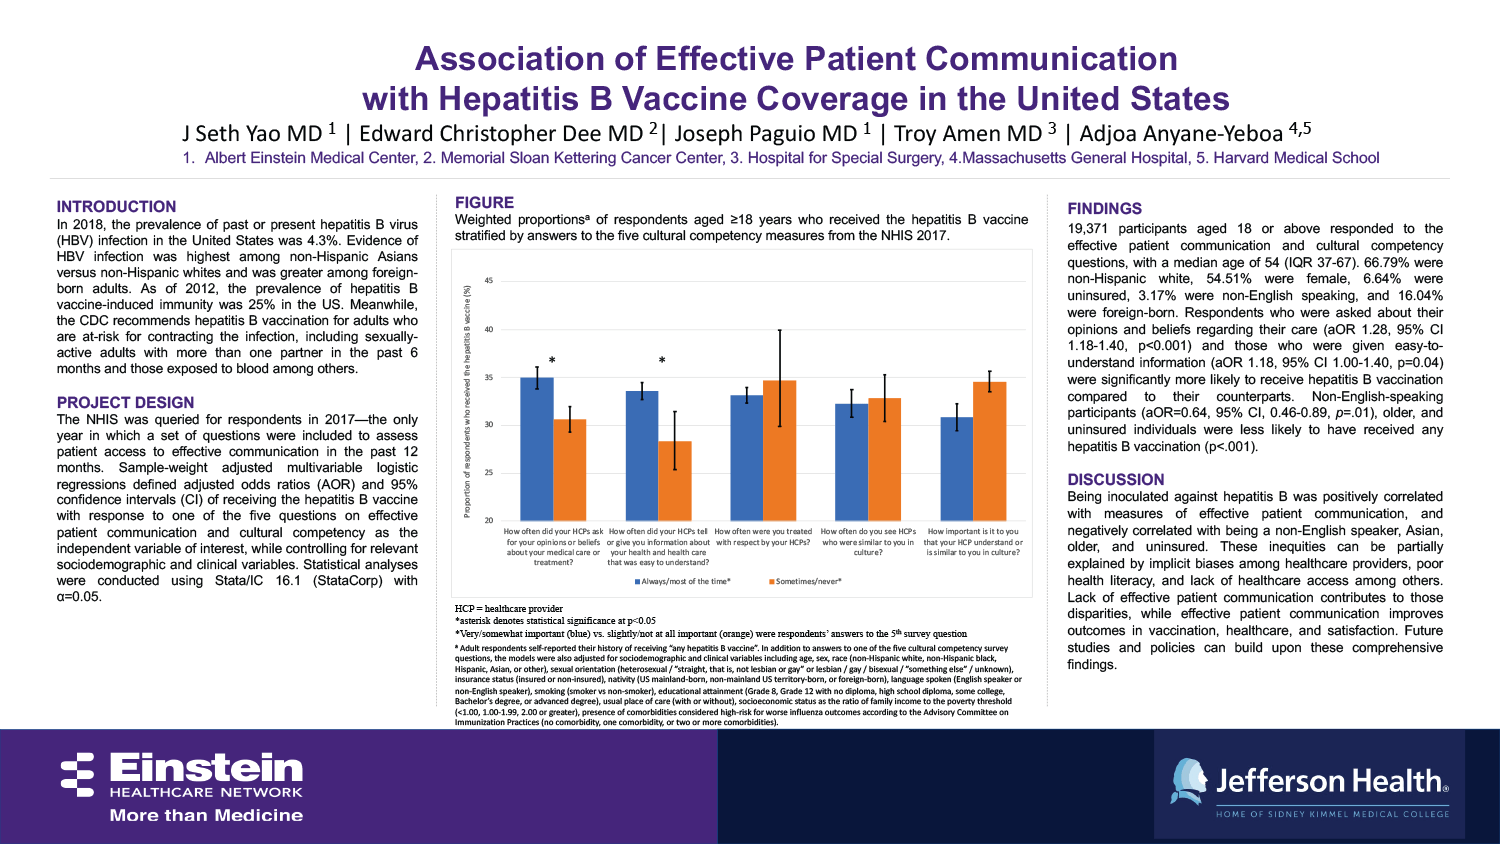 Jasper Seth Yao - PAS-21-Association-of-Effective-Patient-Communication-with-Hepatitis-B-Vaccine-Coverage-in-the-United-States_